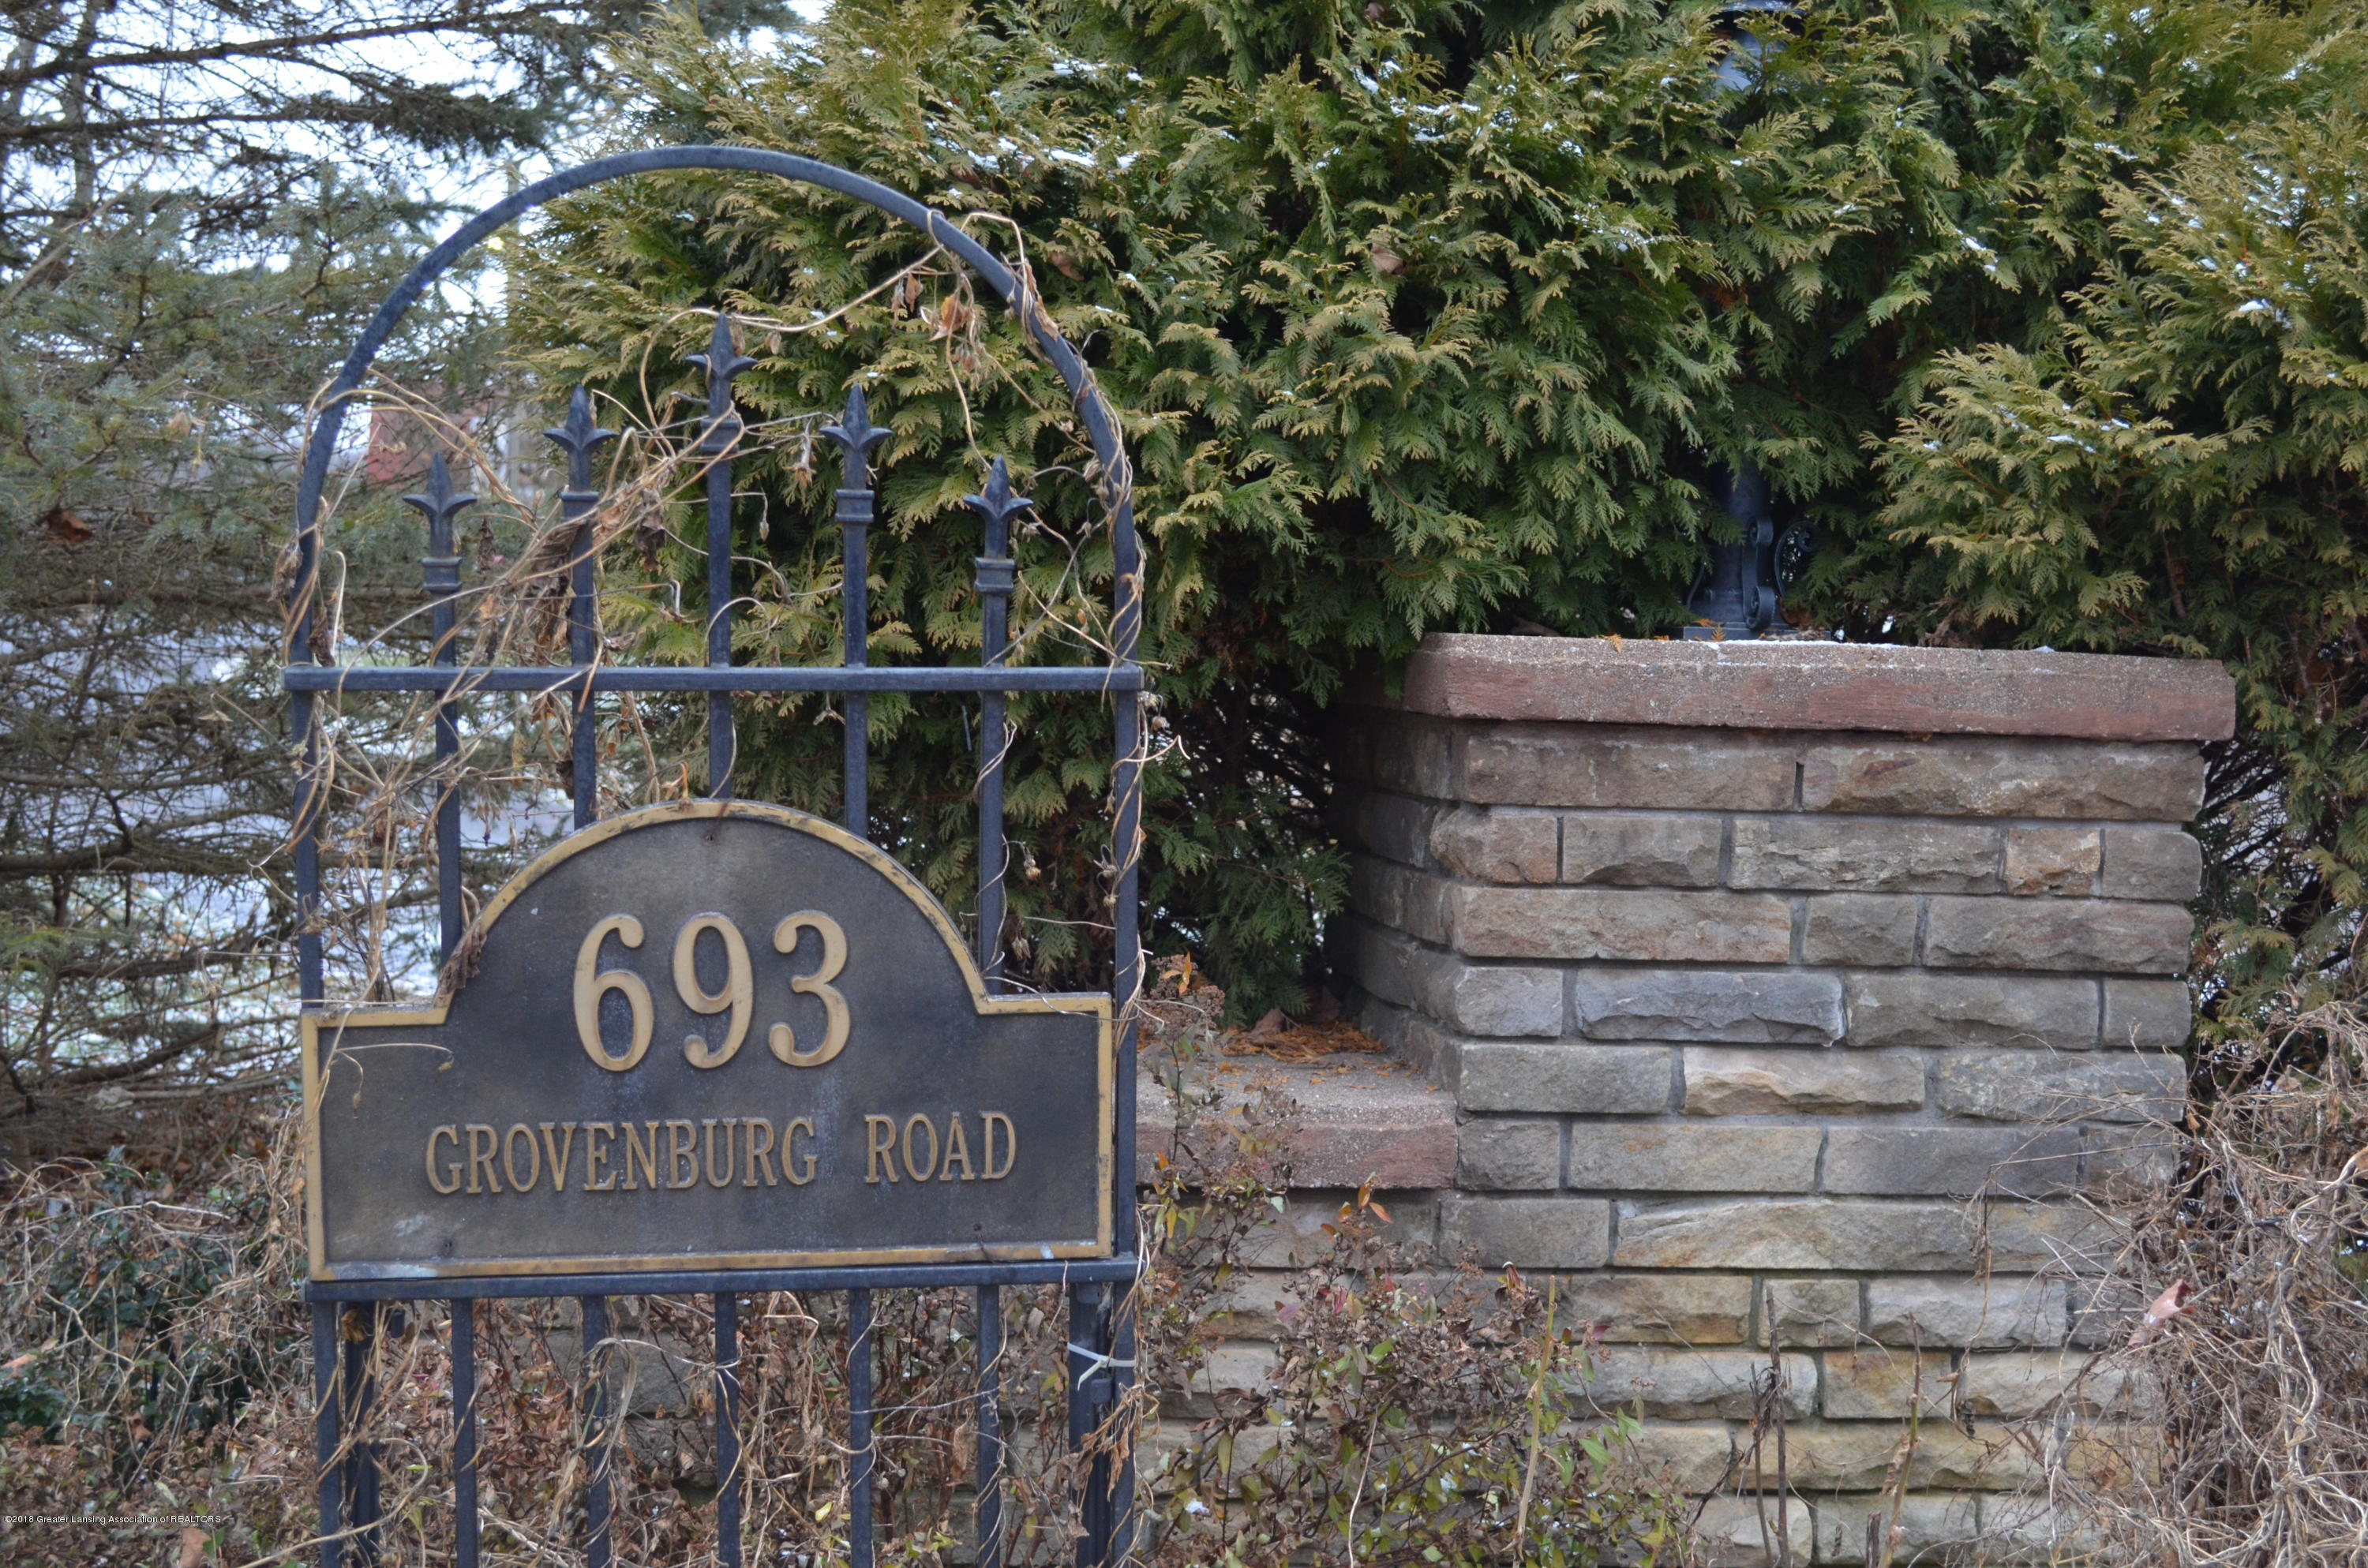 693 Grovenburg Rd - DSC_0930 - 2